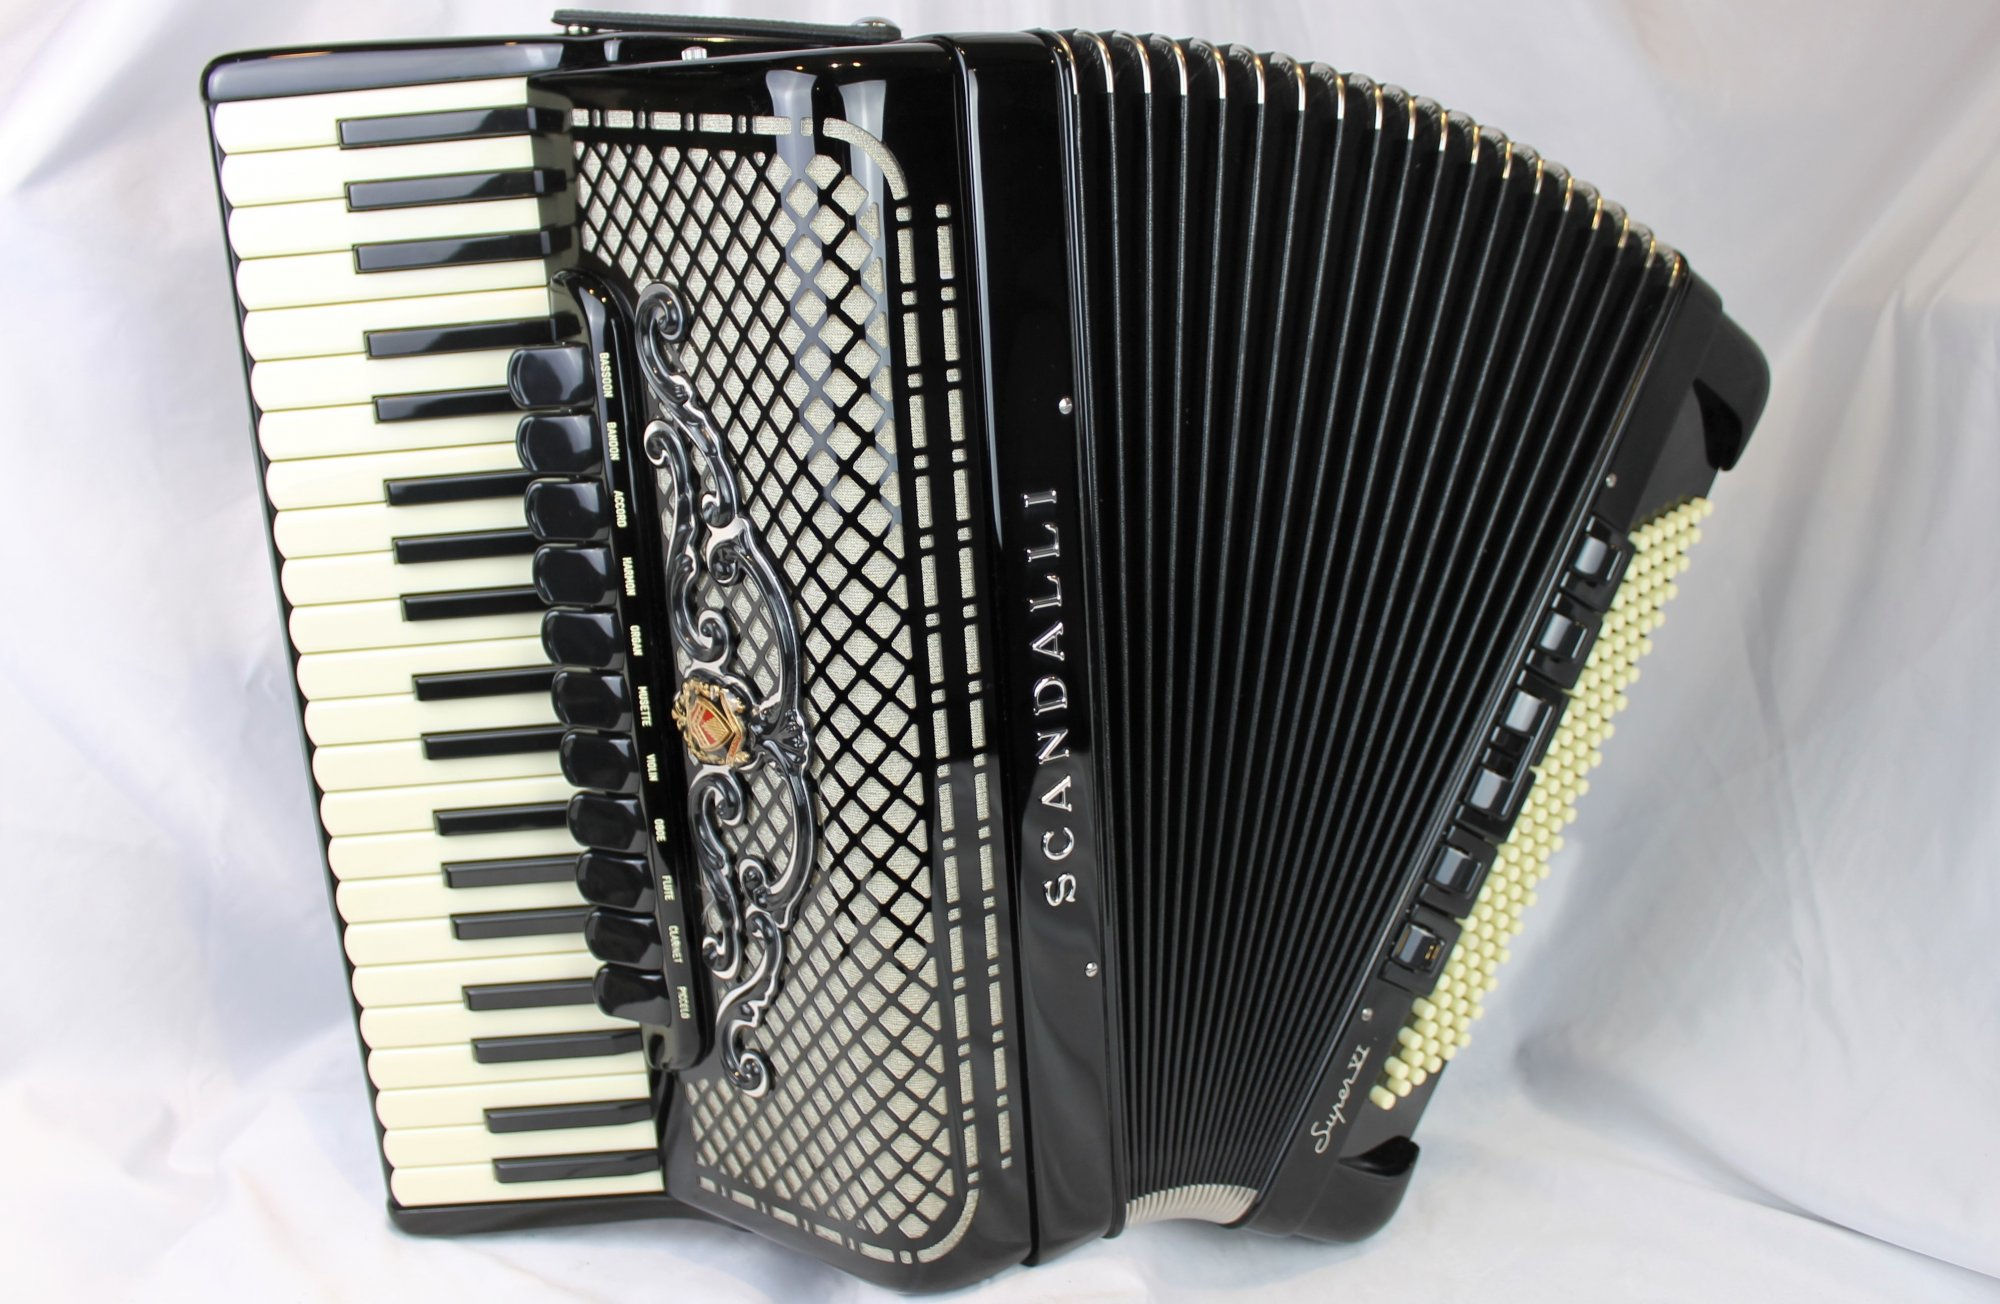 NEW Black Scandalli Super VI Extreme Binci Bombate Reeds Piano Accordion LMMH 41 120